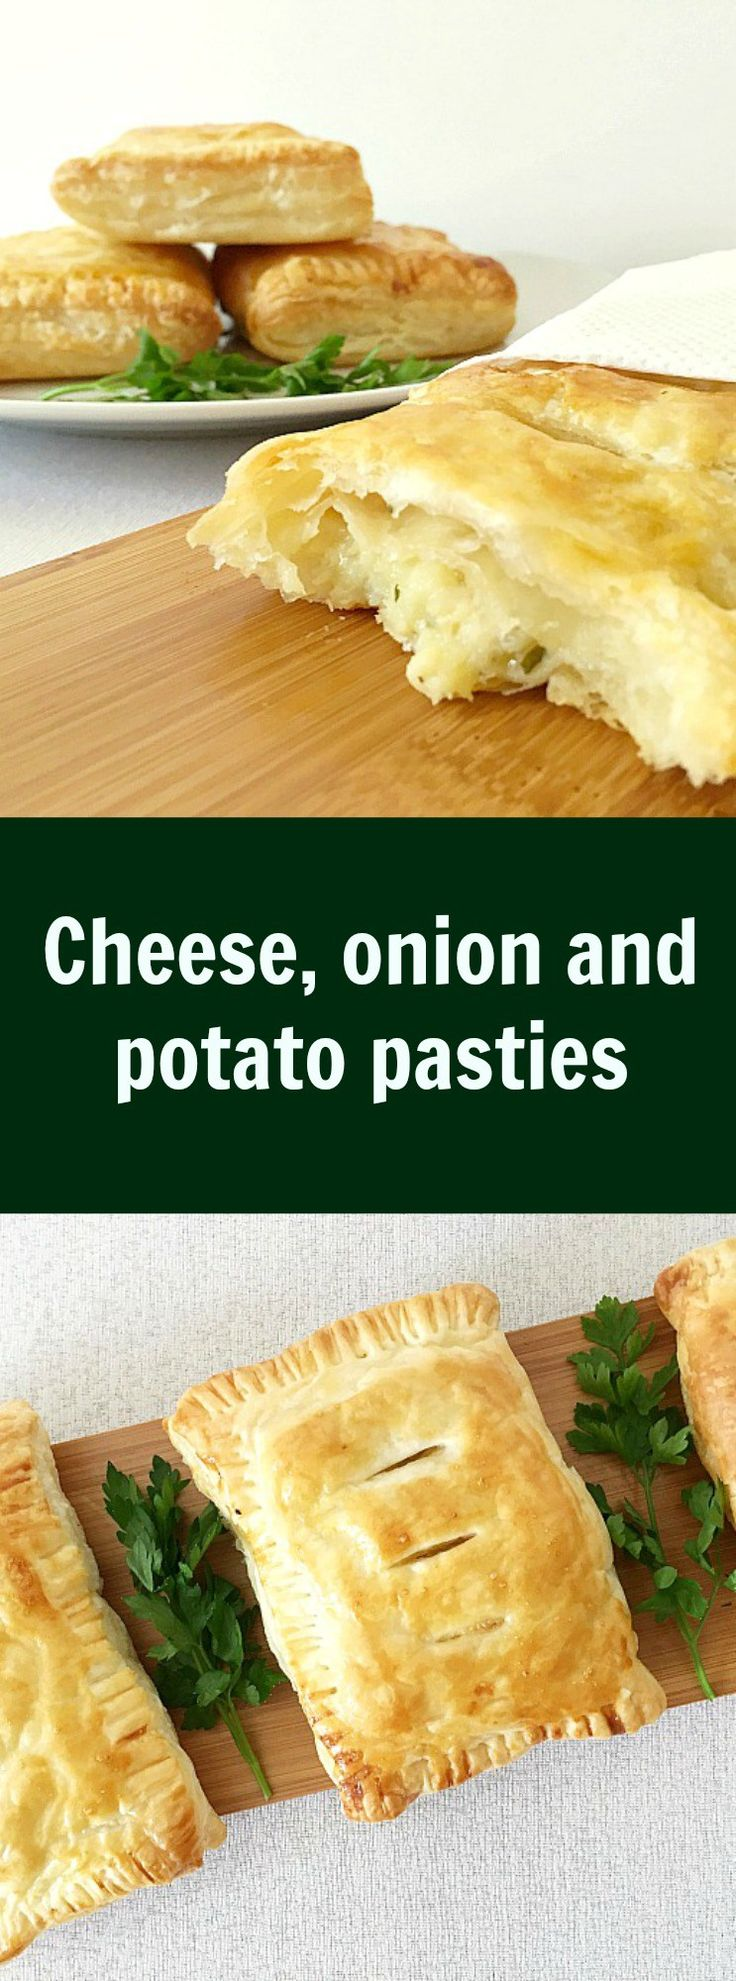 Cheese, onion and potato pasties make an ideal snack whenever you feel peckish. A very quick recipe that is so delicious.